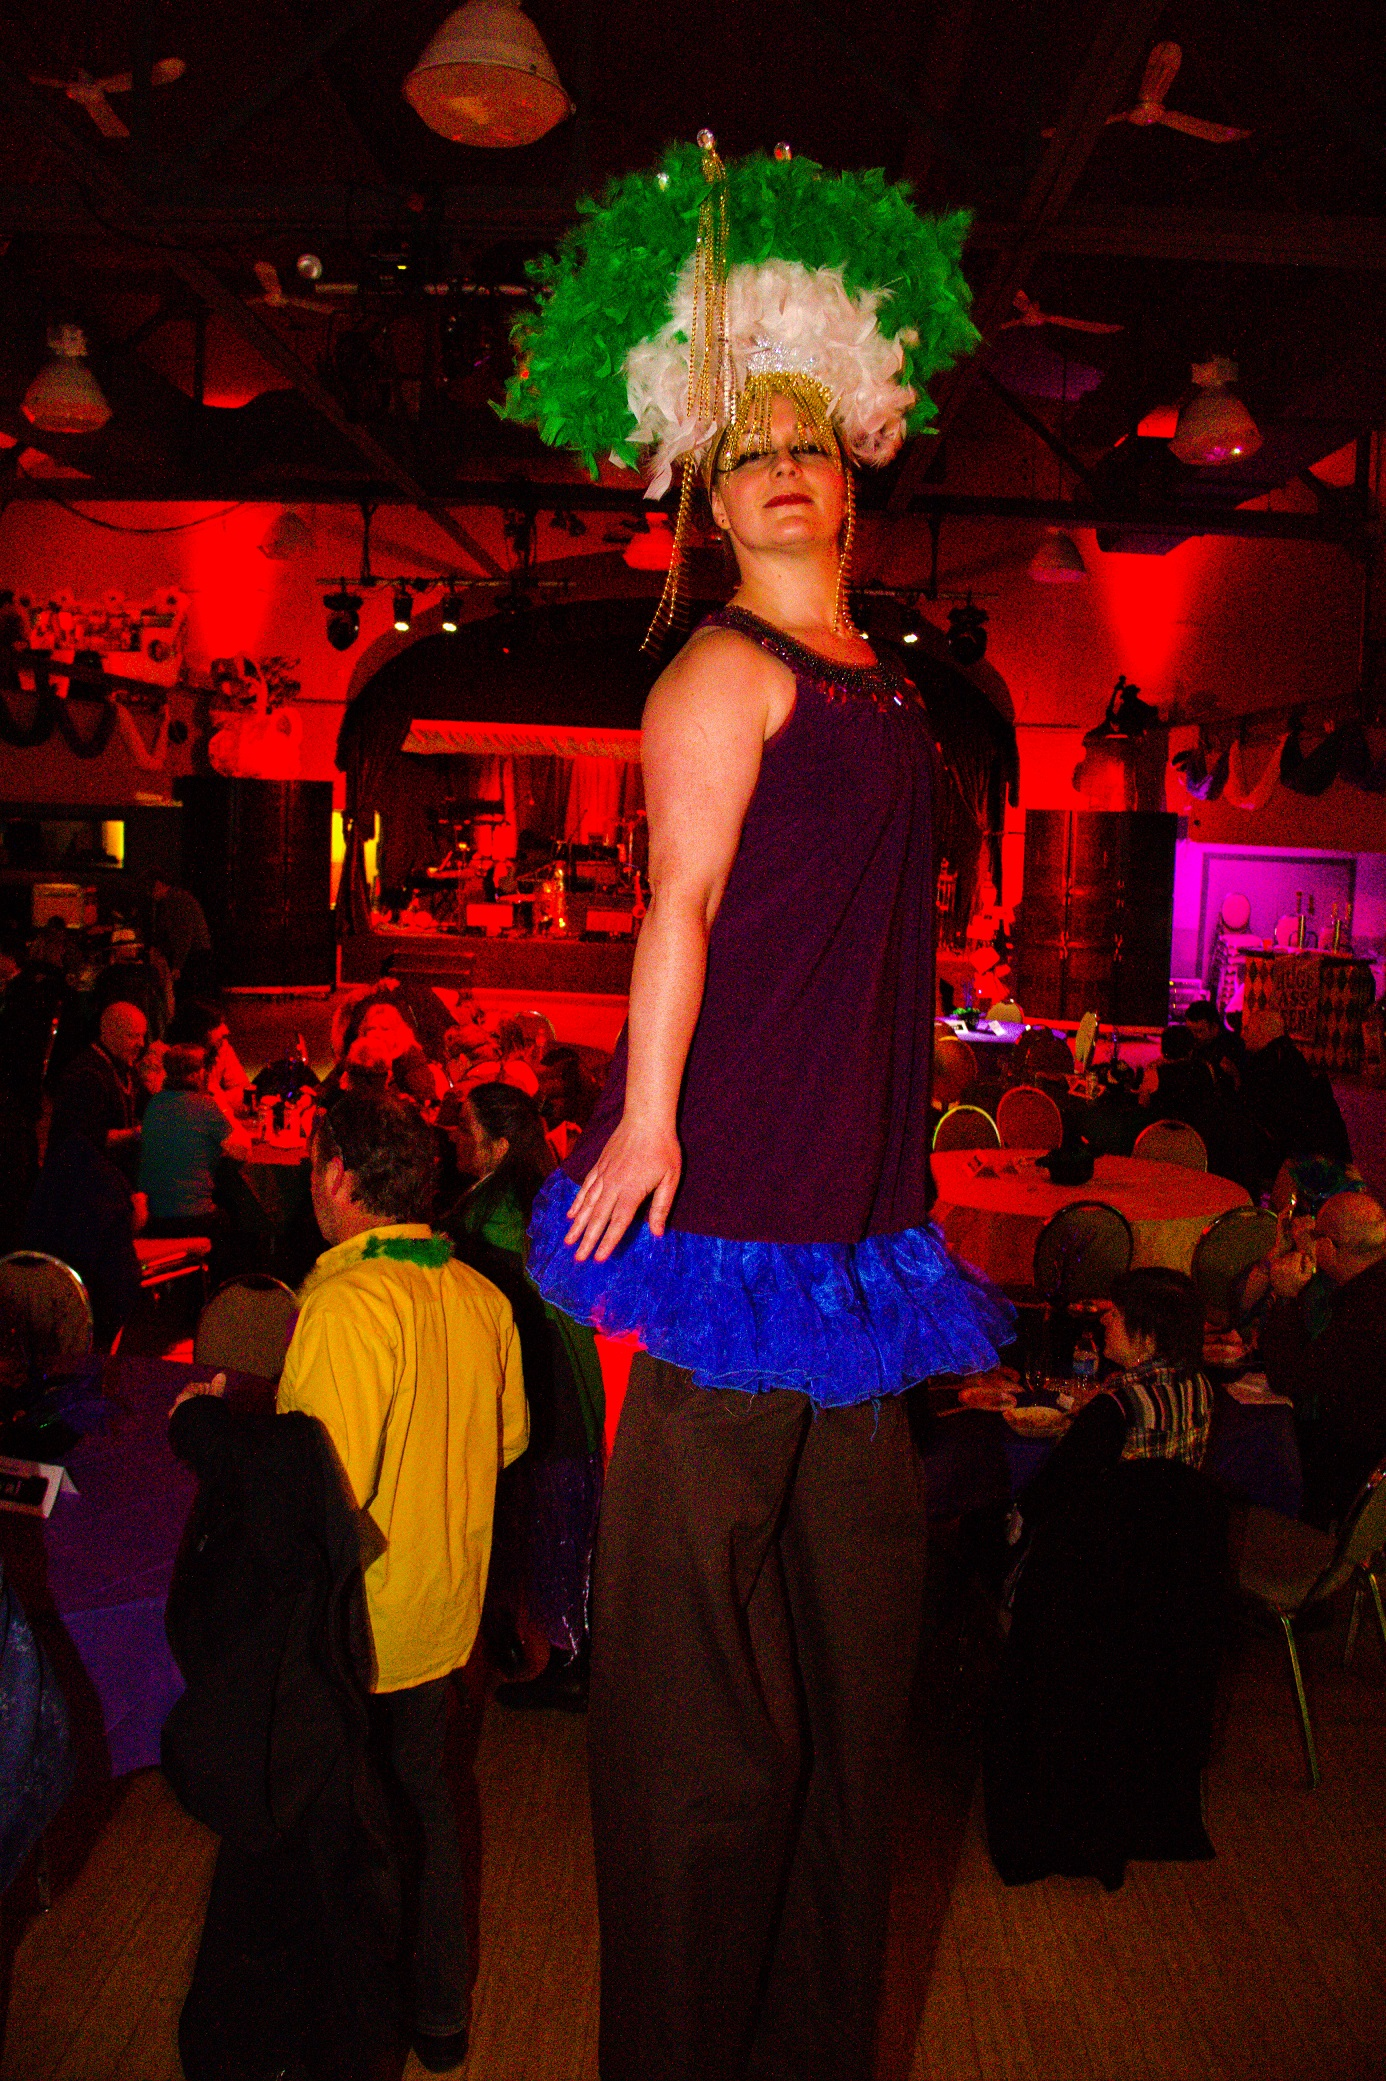 Stilt walker - one of the fabulous Atlantic Cirque performers we had at the event